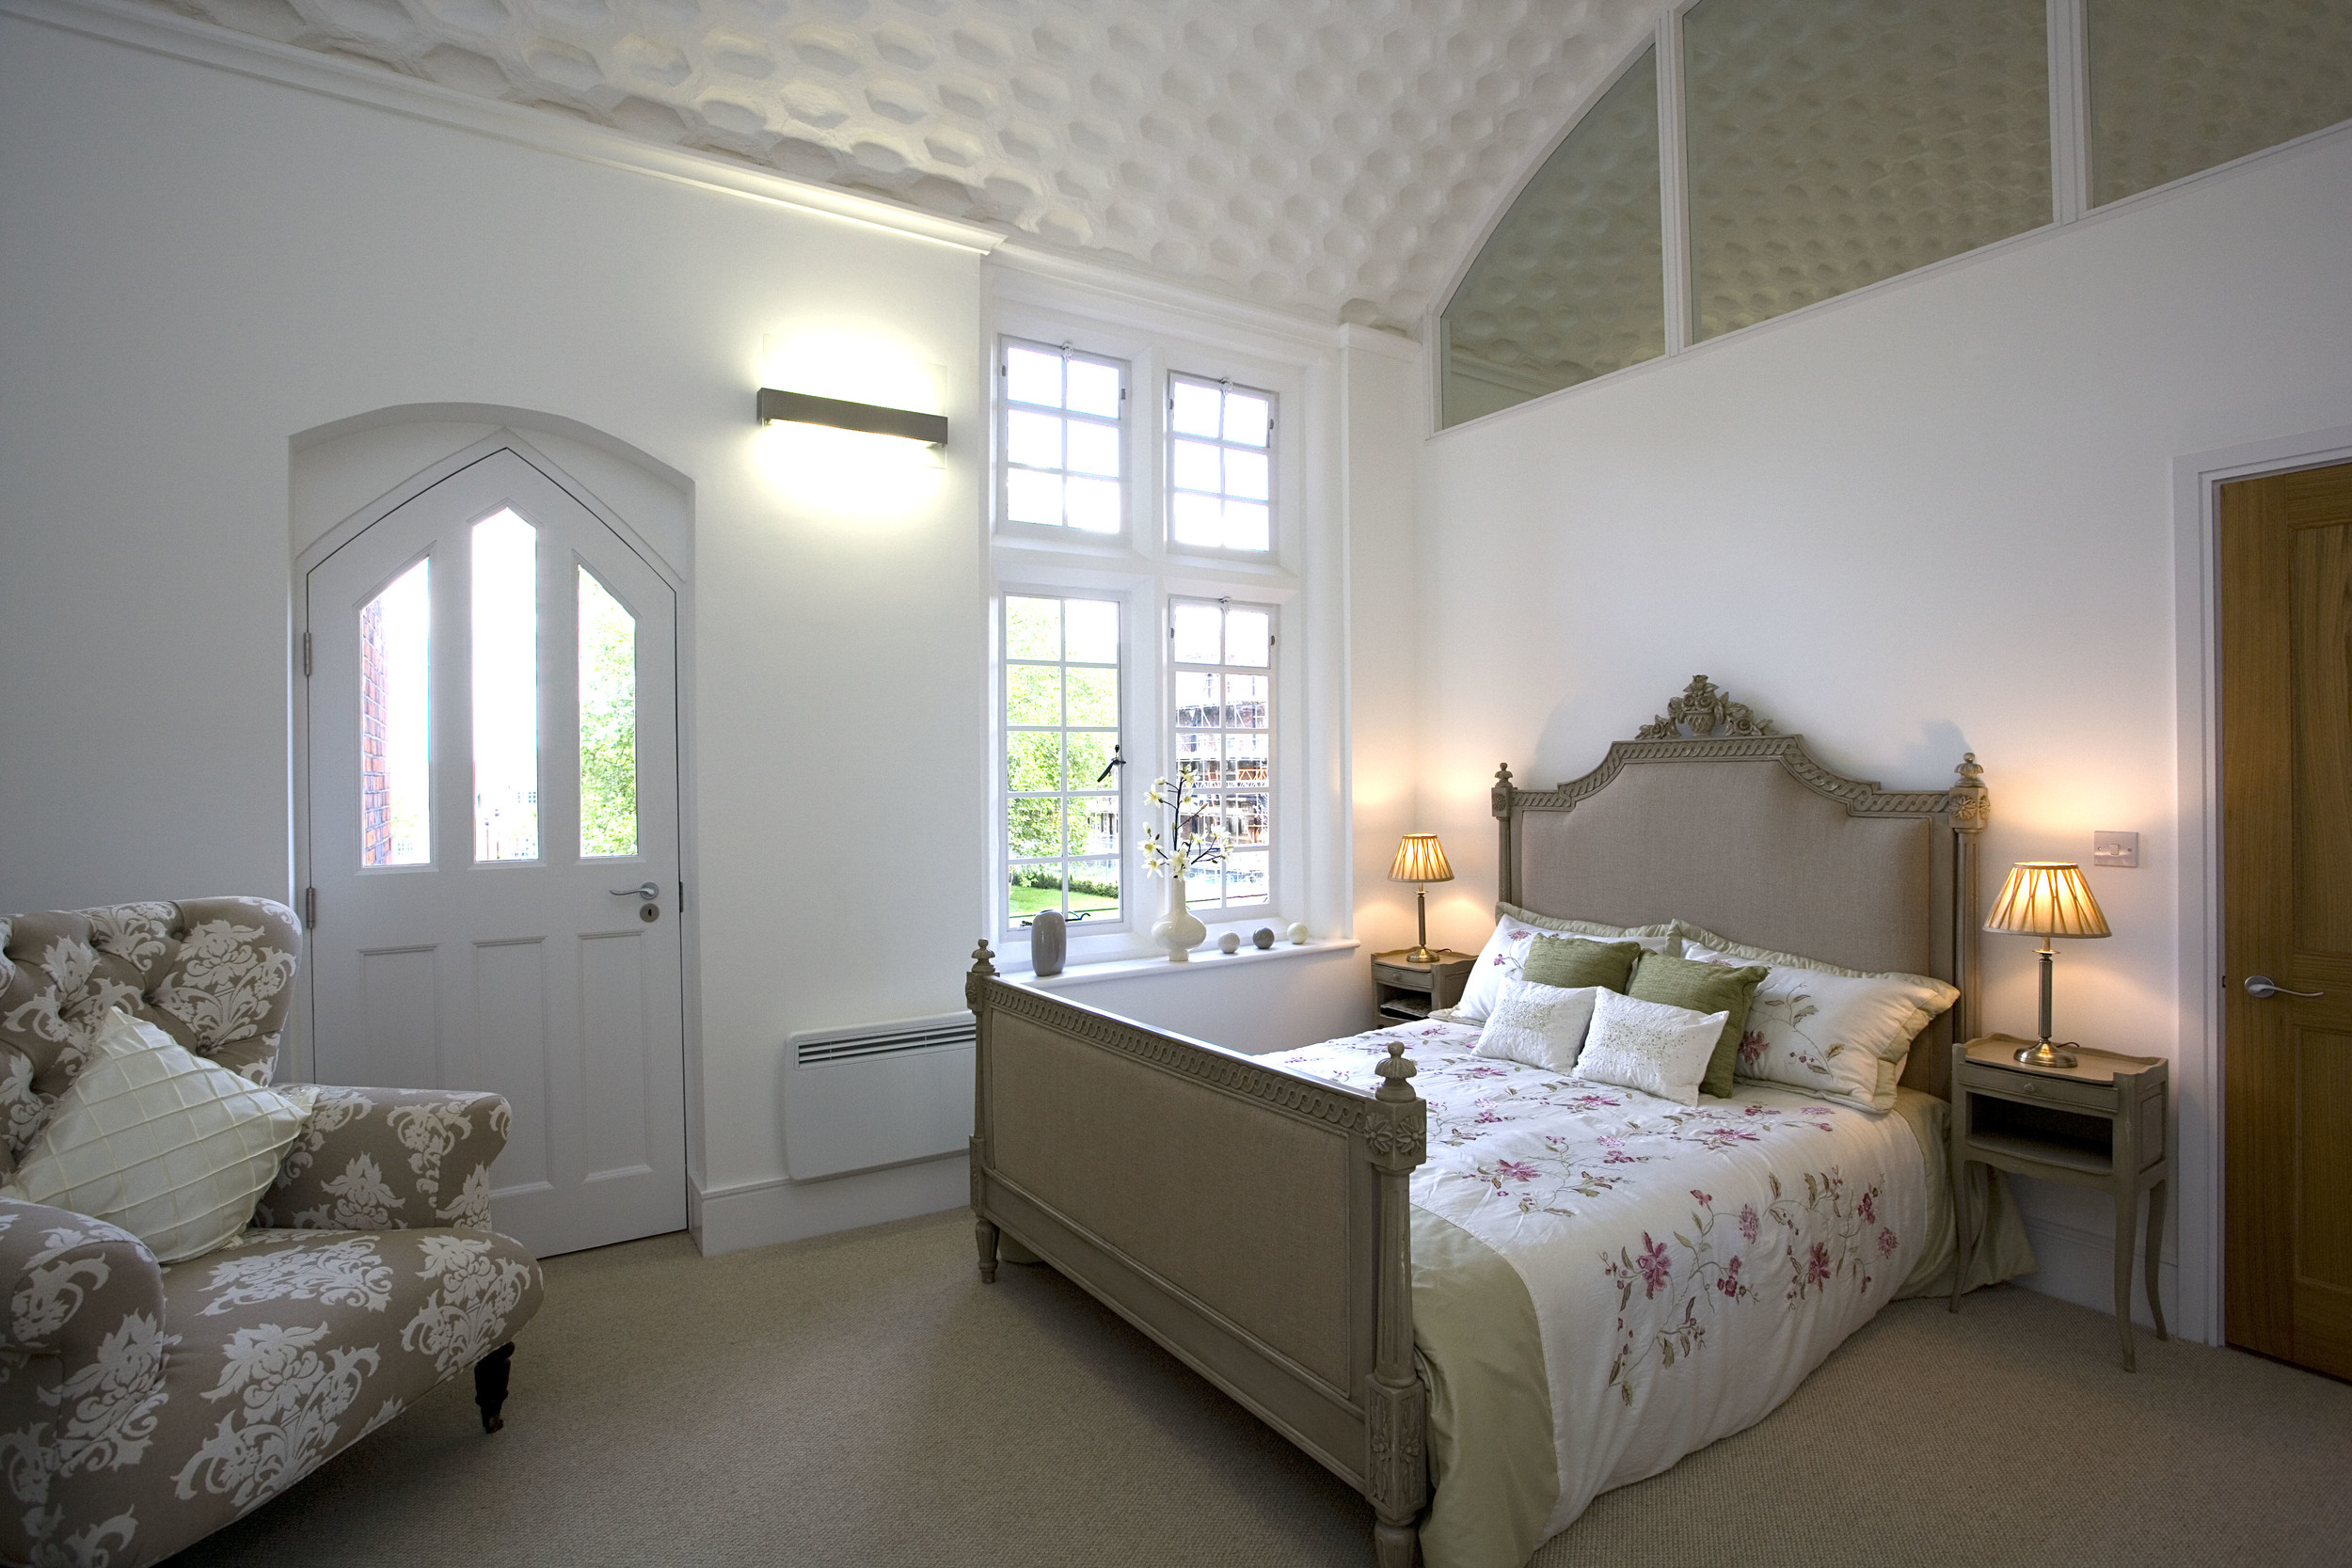 bedroom with glazed partition.jpg